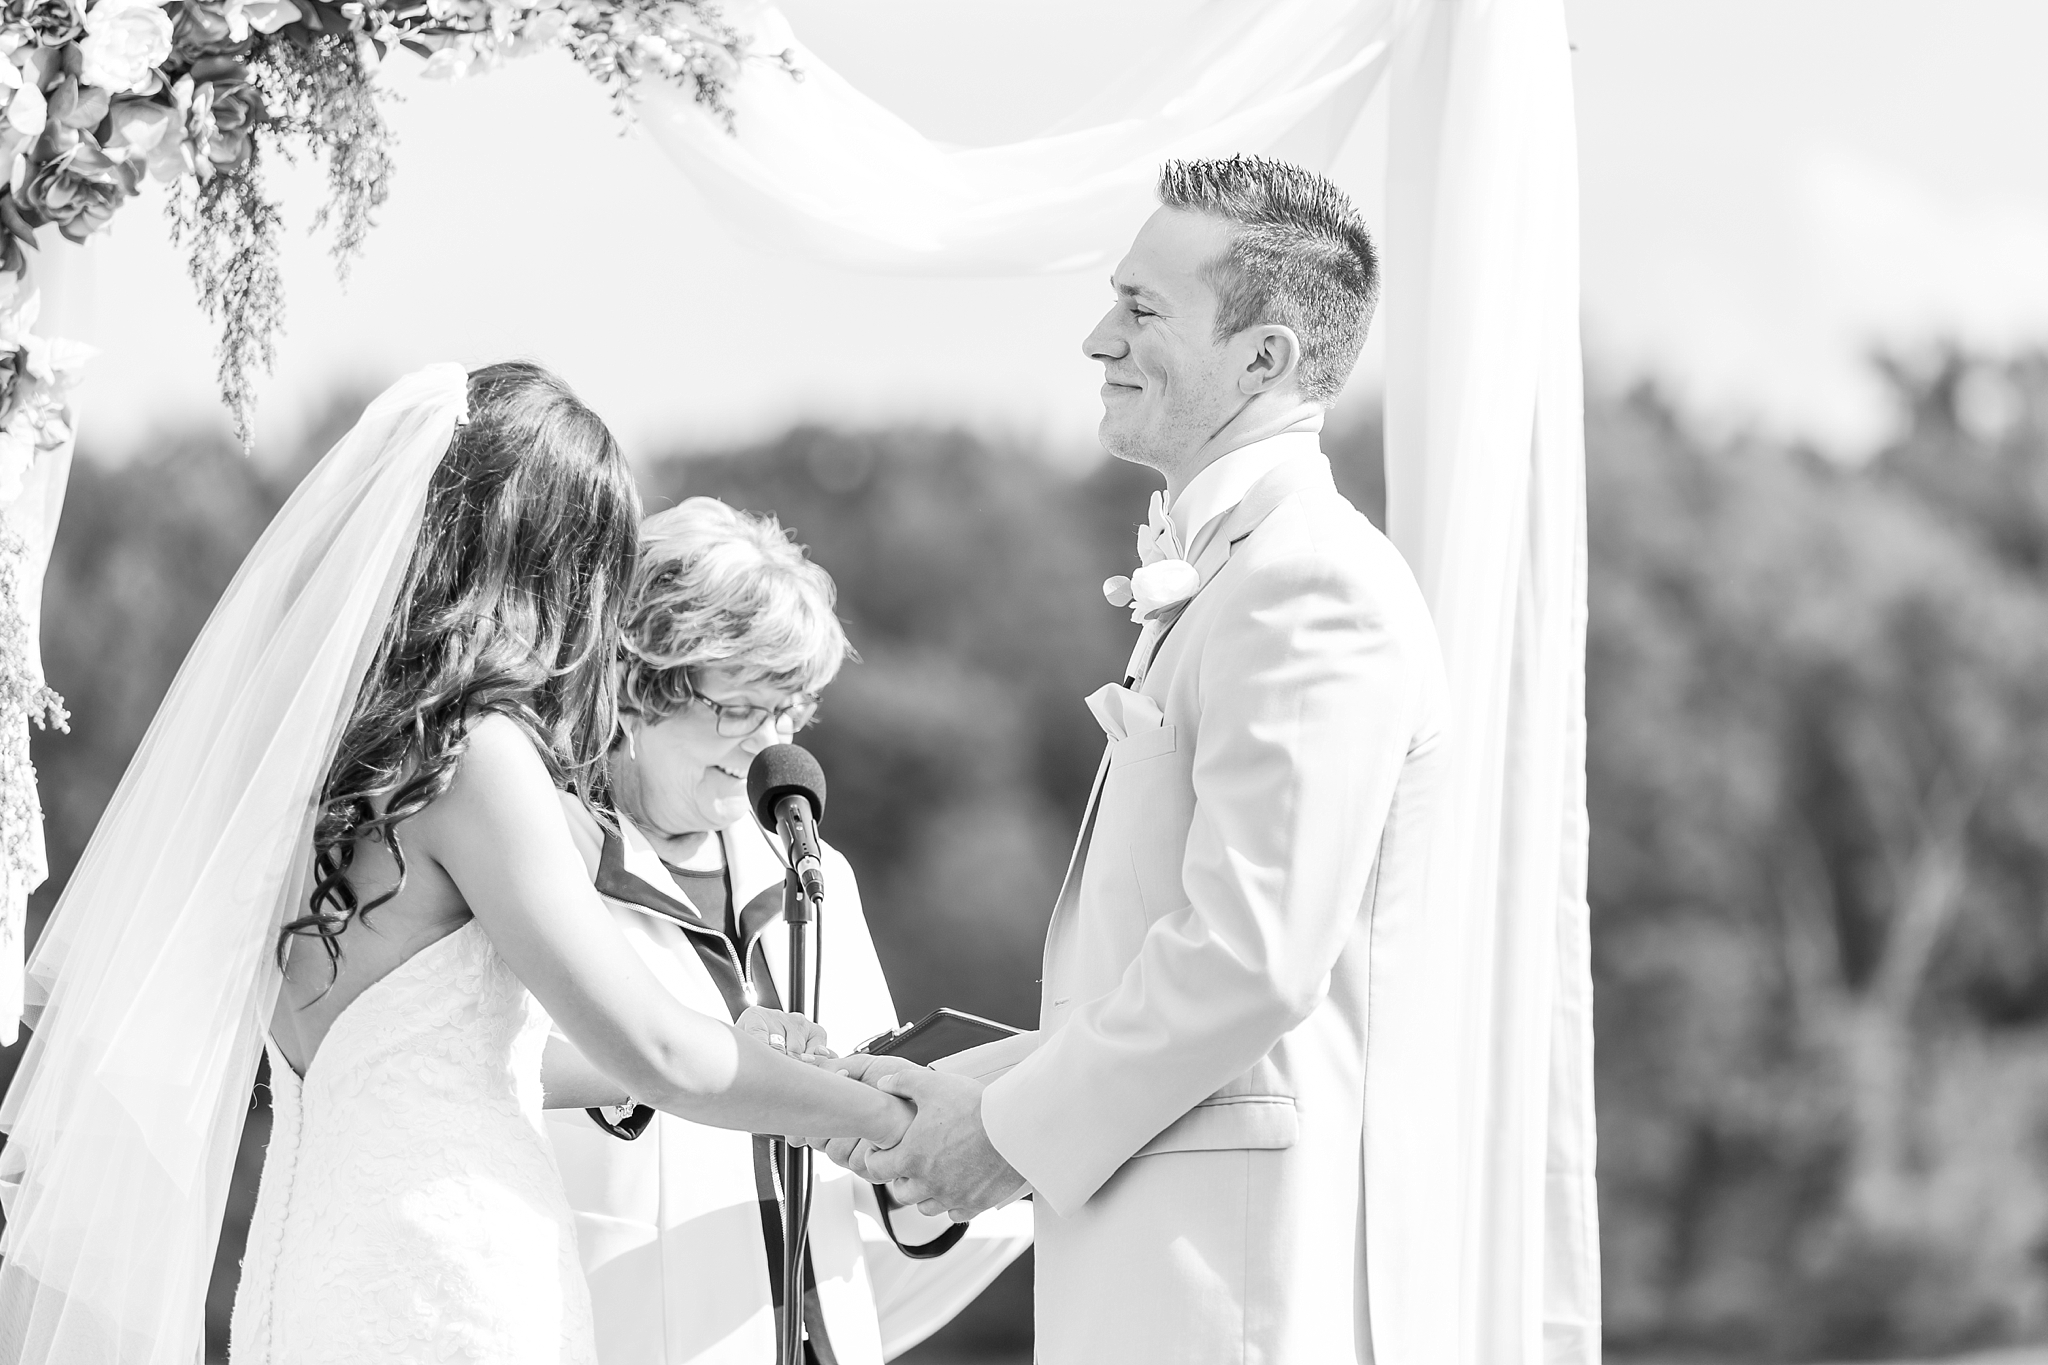 candid-timeless-wedding-photos-at-the-captains-club-in-grand-blanc-michigan-by-courtney-carolyn-photography_0047.jpg